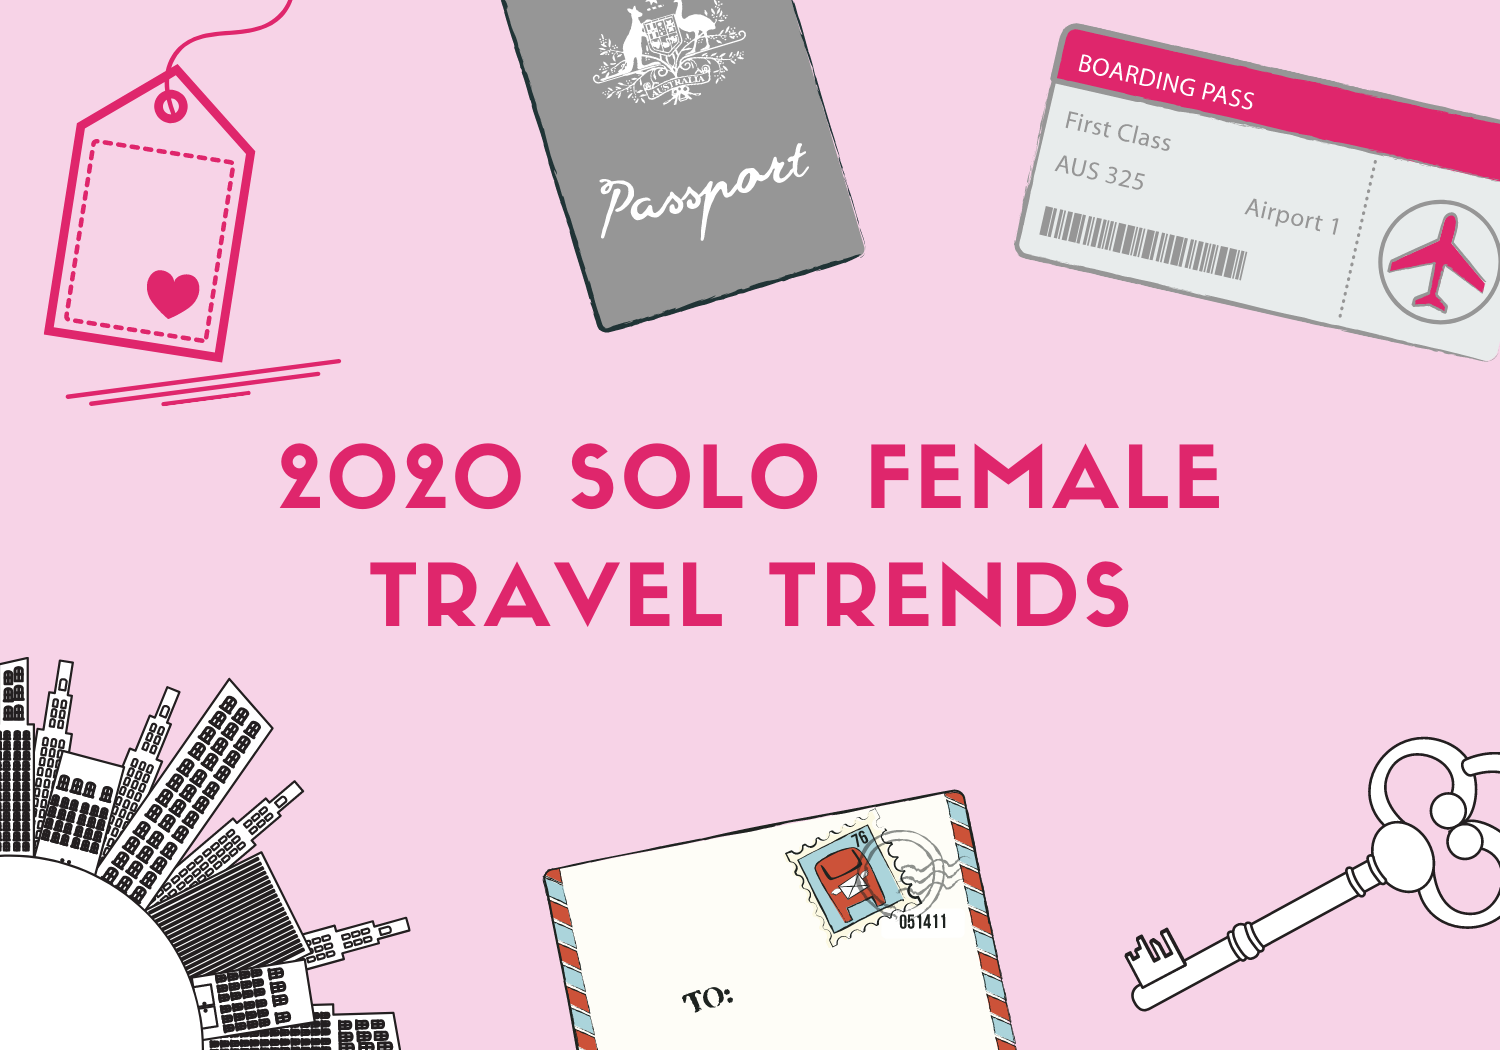 Solo female travel statistics